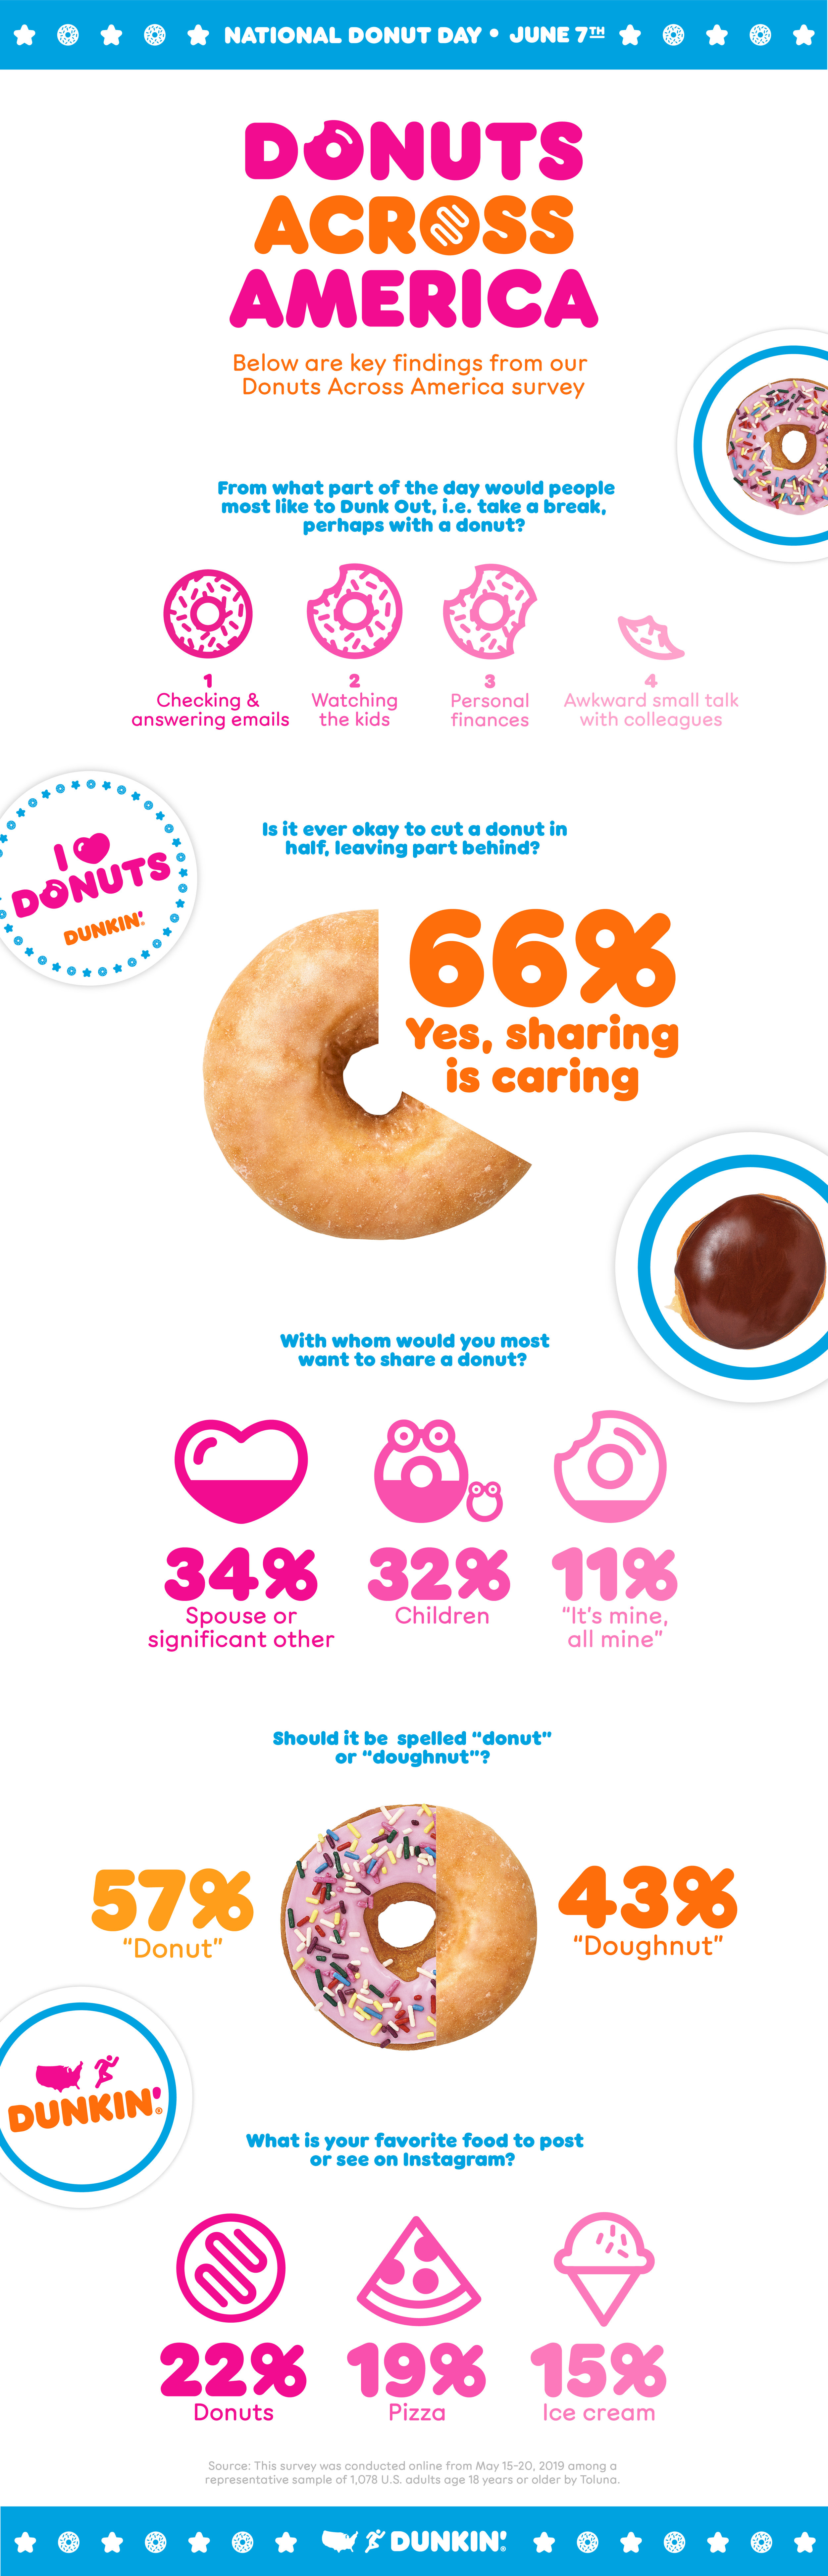 Donuts Across America Survey Infographic.jpg